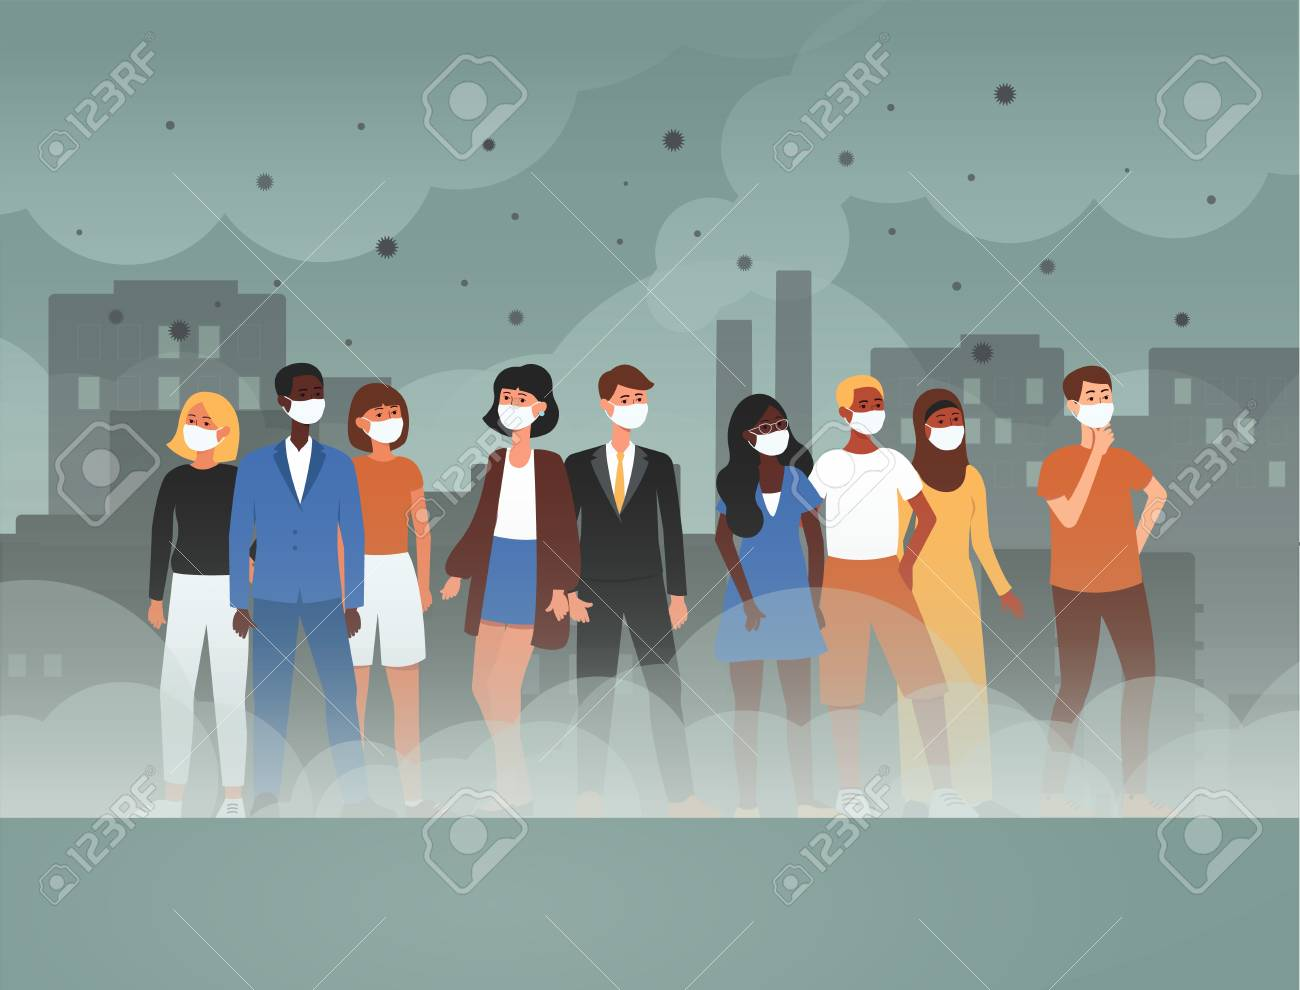 Environment toxic gas pollution and industry smog danger concept flat cartoon vector illustration. People in protective face masks from contaminated dirty city air. - 128170792